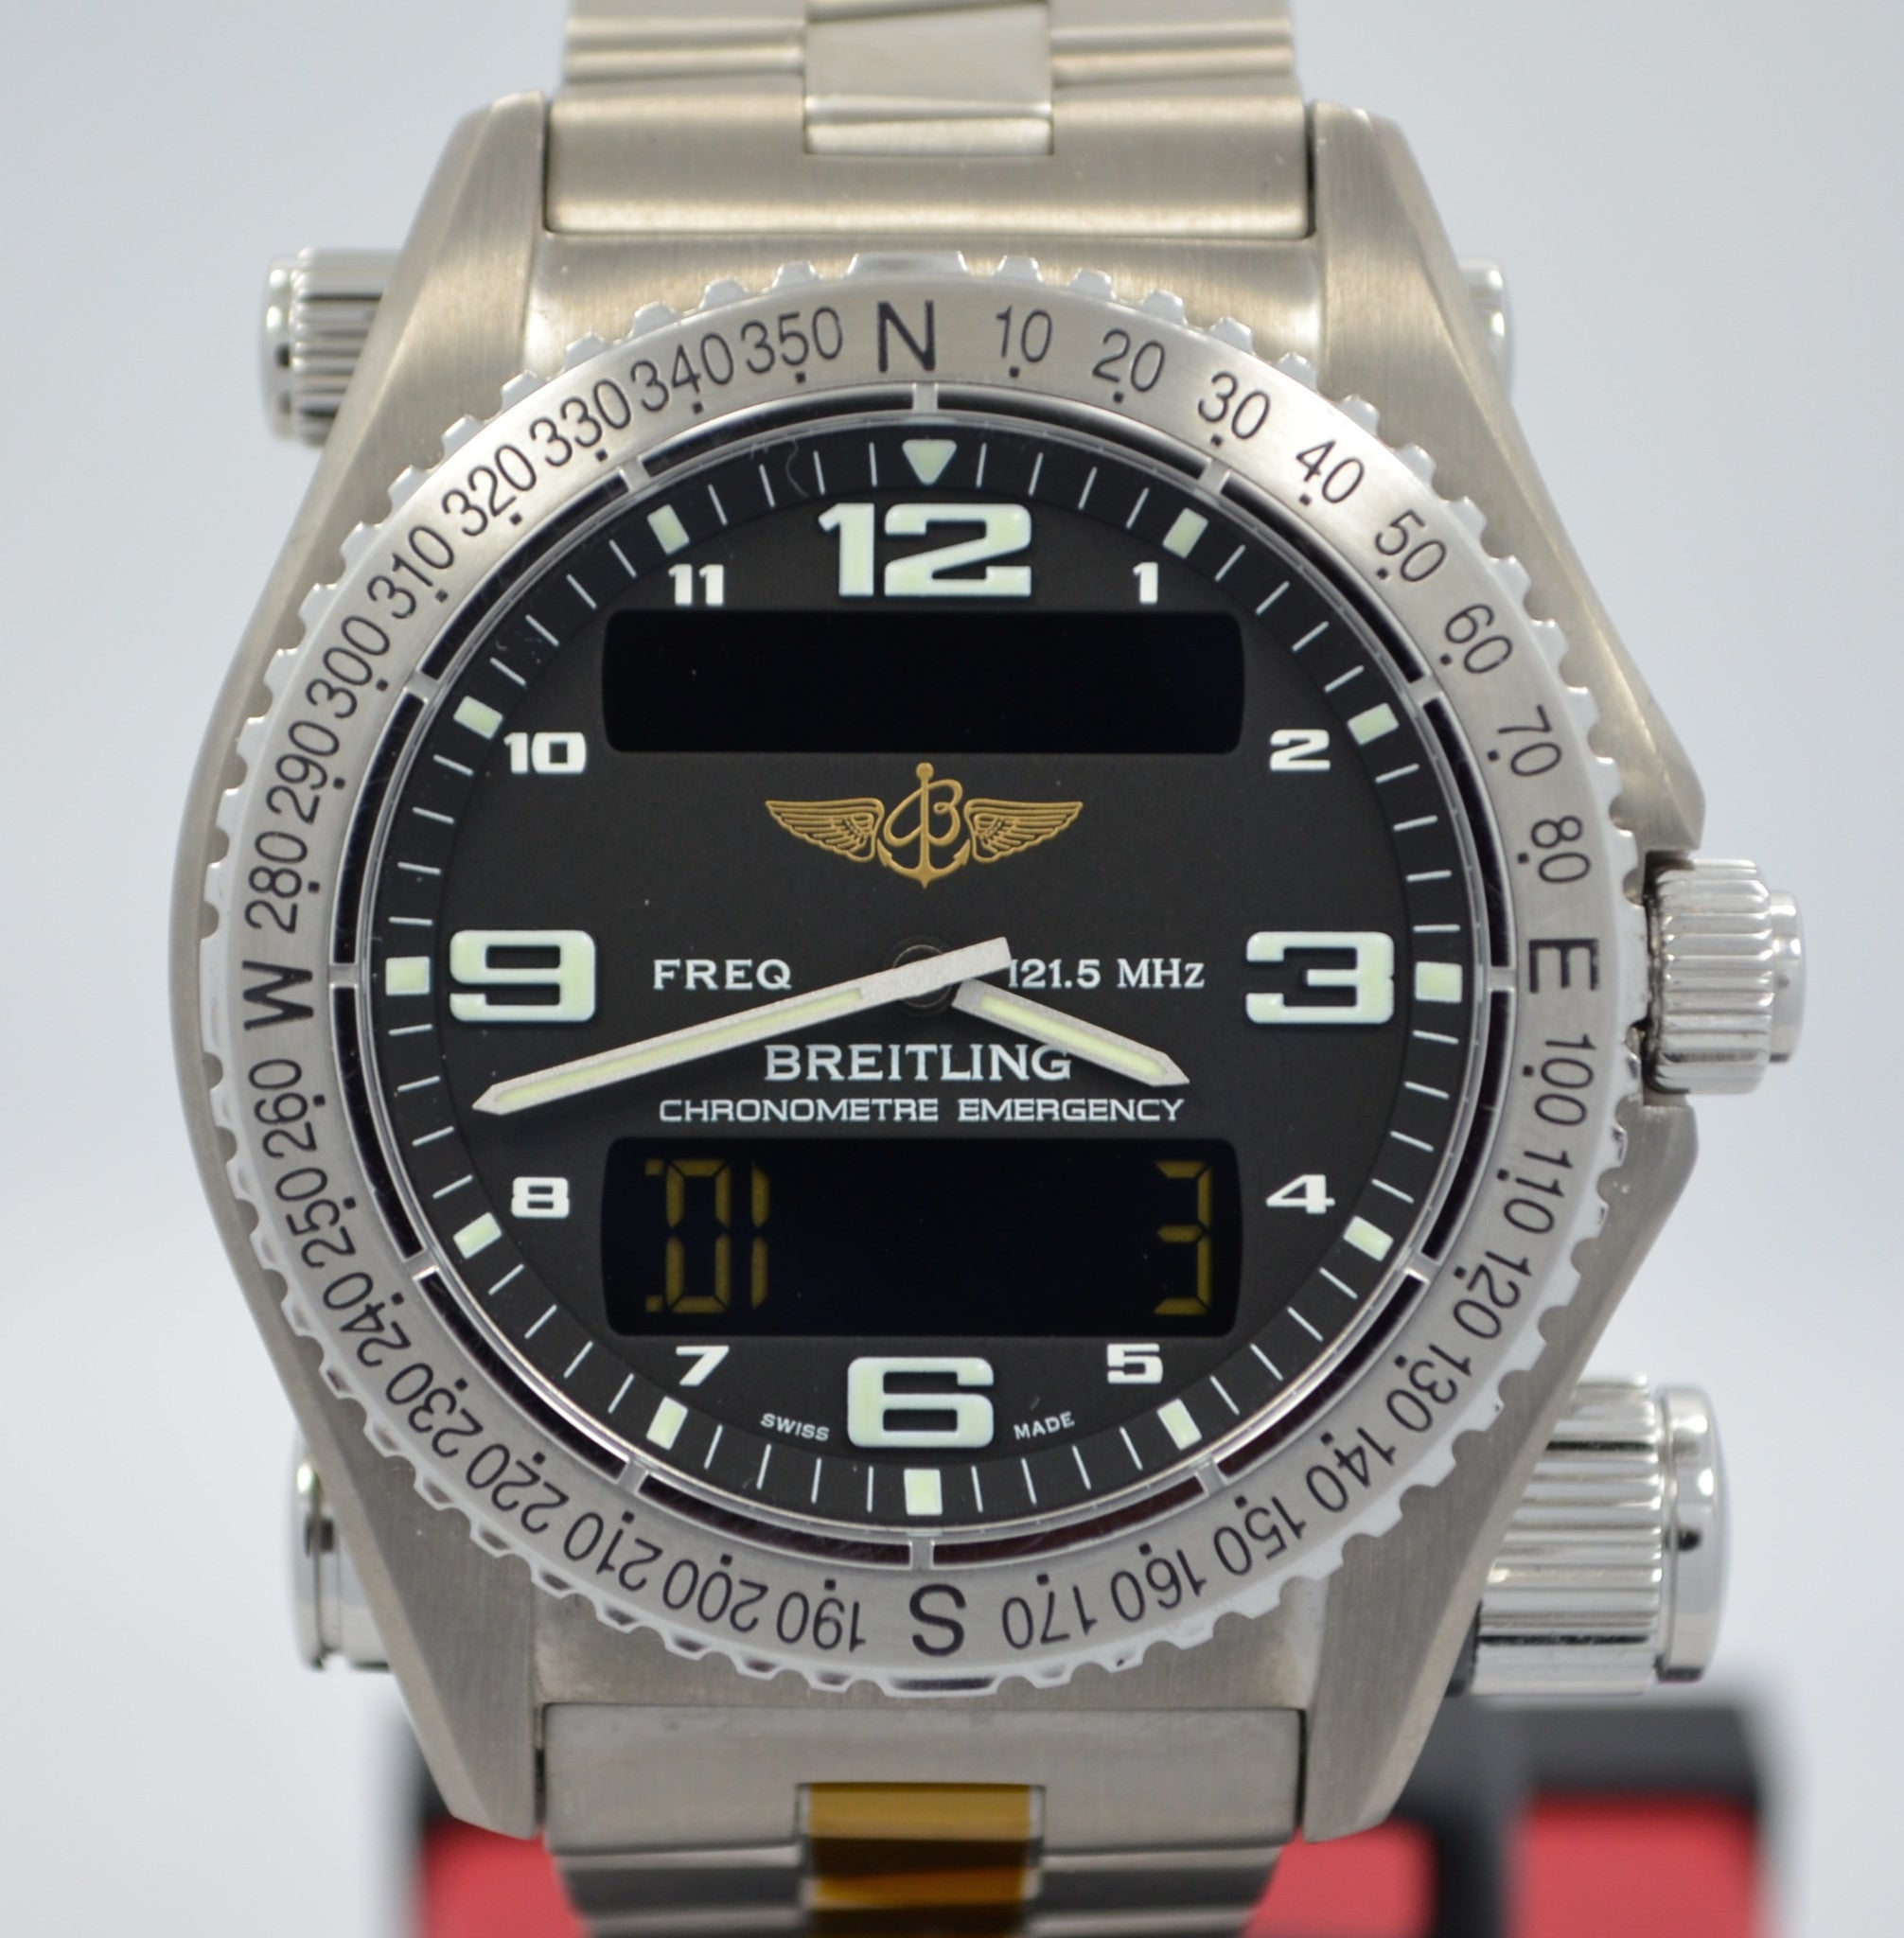 Breitling Emergency E76321 Titanium Aeronautical Kit Quartz Wristwatch - Hashtag Watch Company